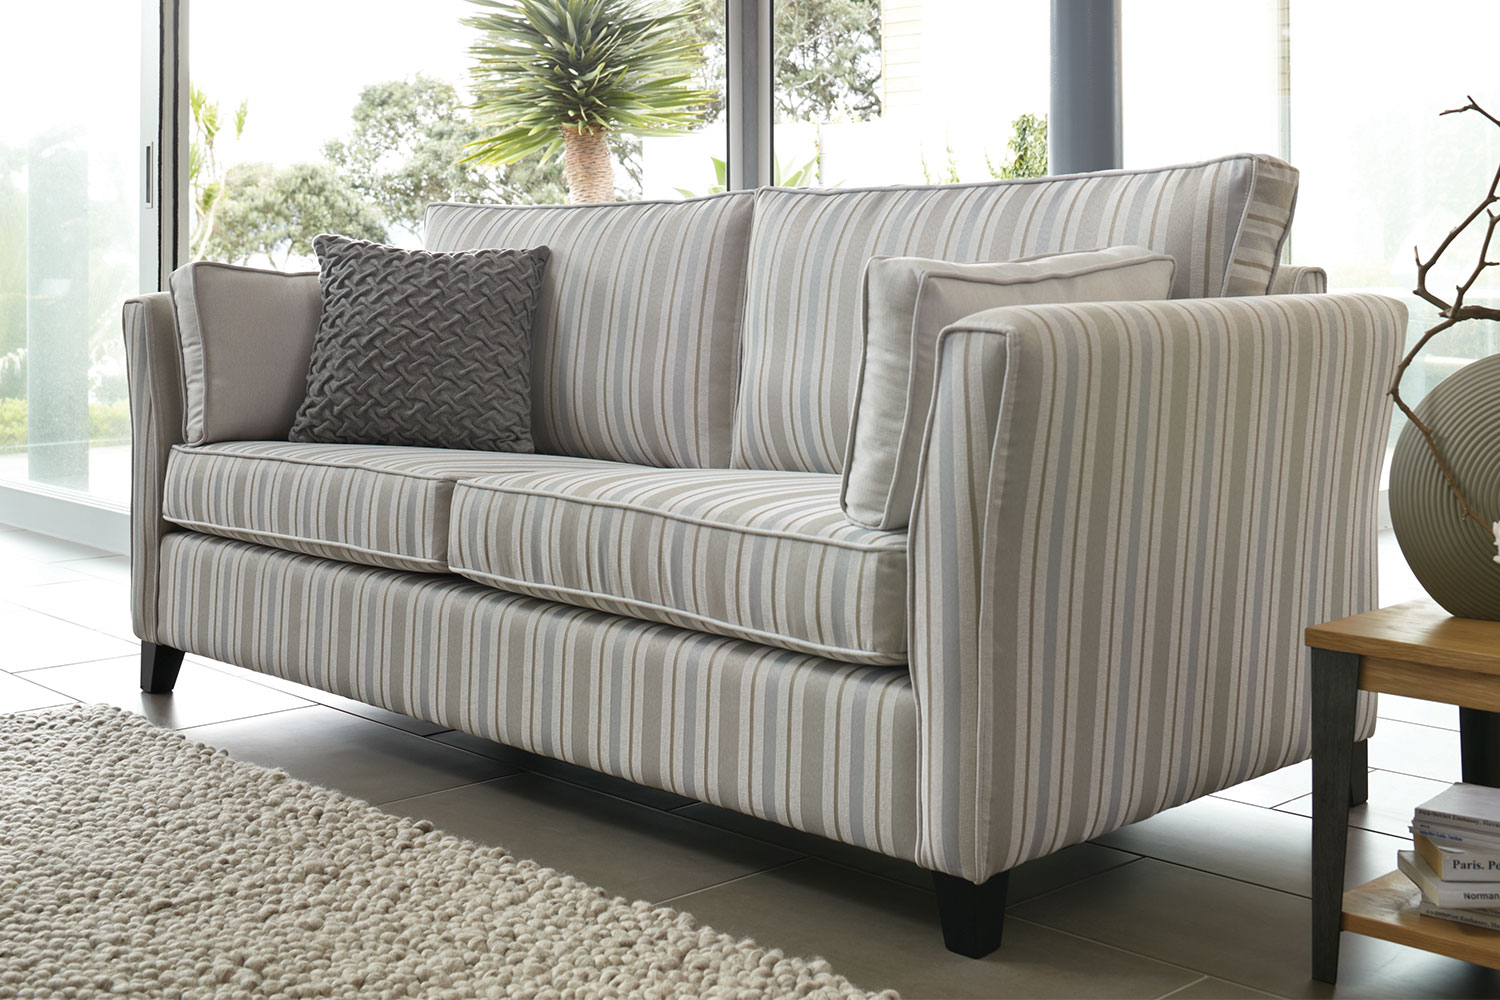 2 seater sofa cover nz modern contemporary 3 piece leather sectional vienna fabric lounge suite by evan john philp